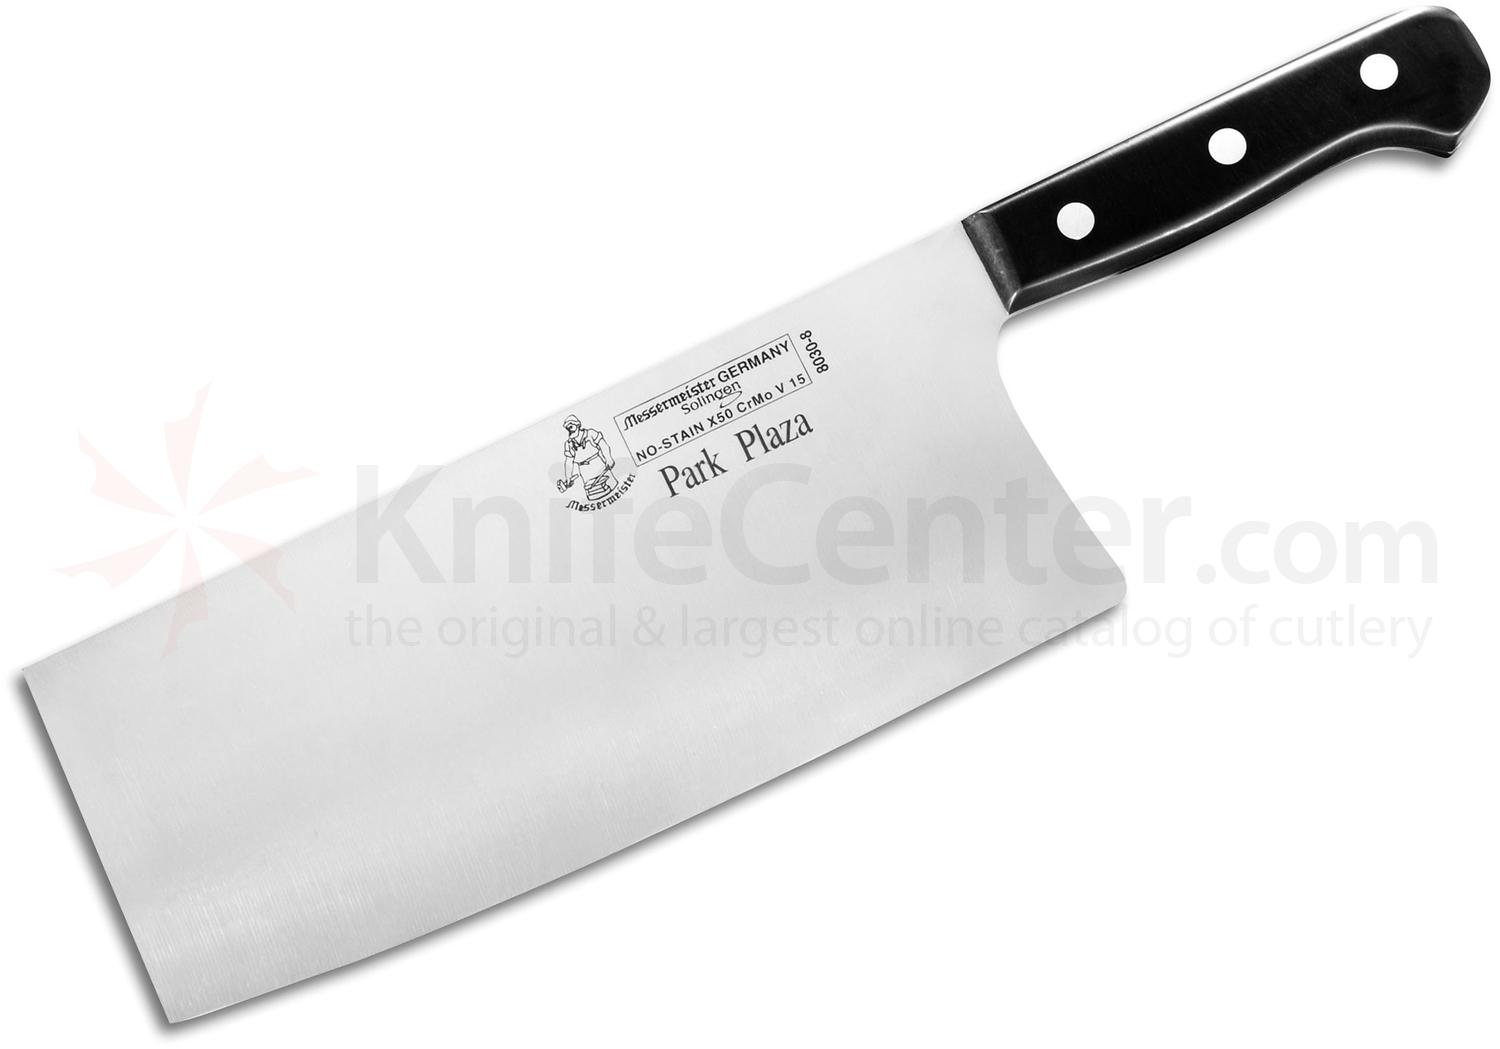 chinese kitchen knife round tables messermeister park plaza 8 quot cleaver